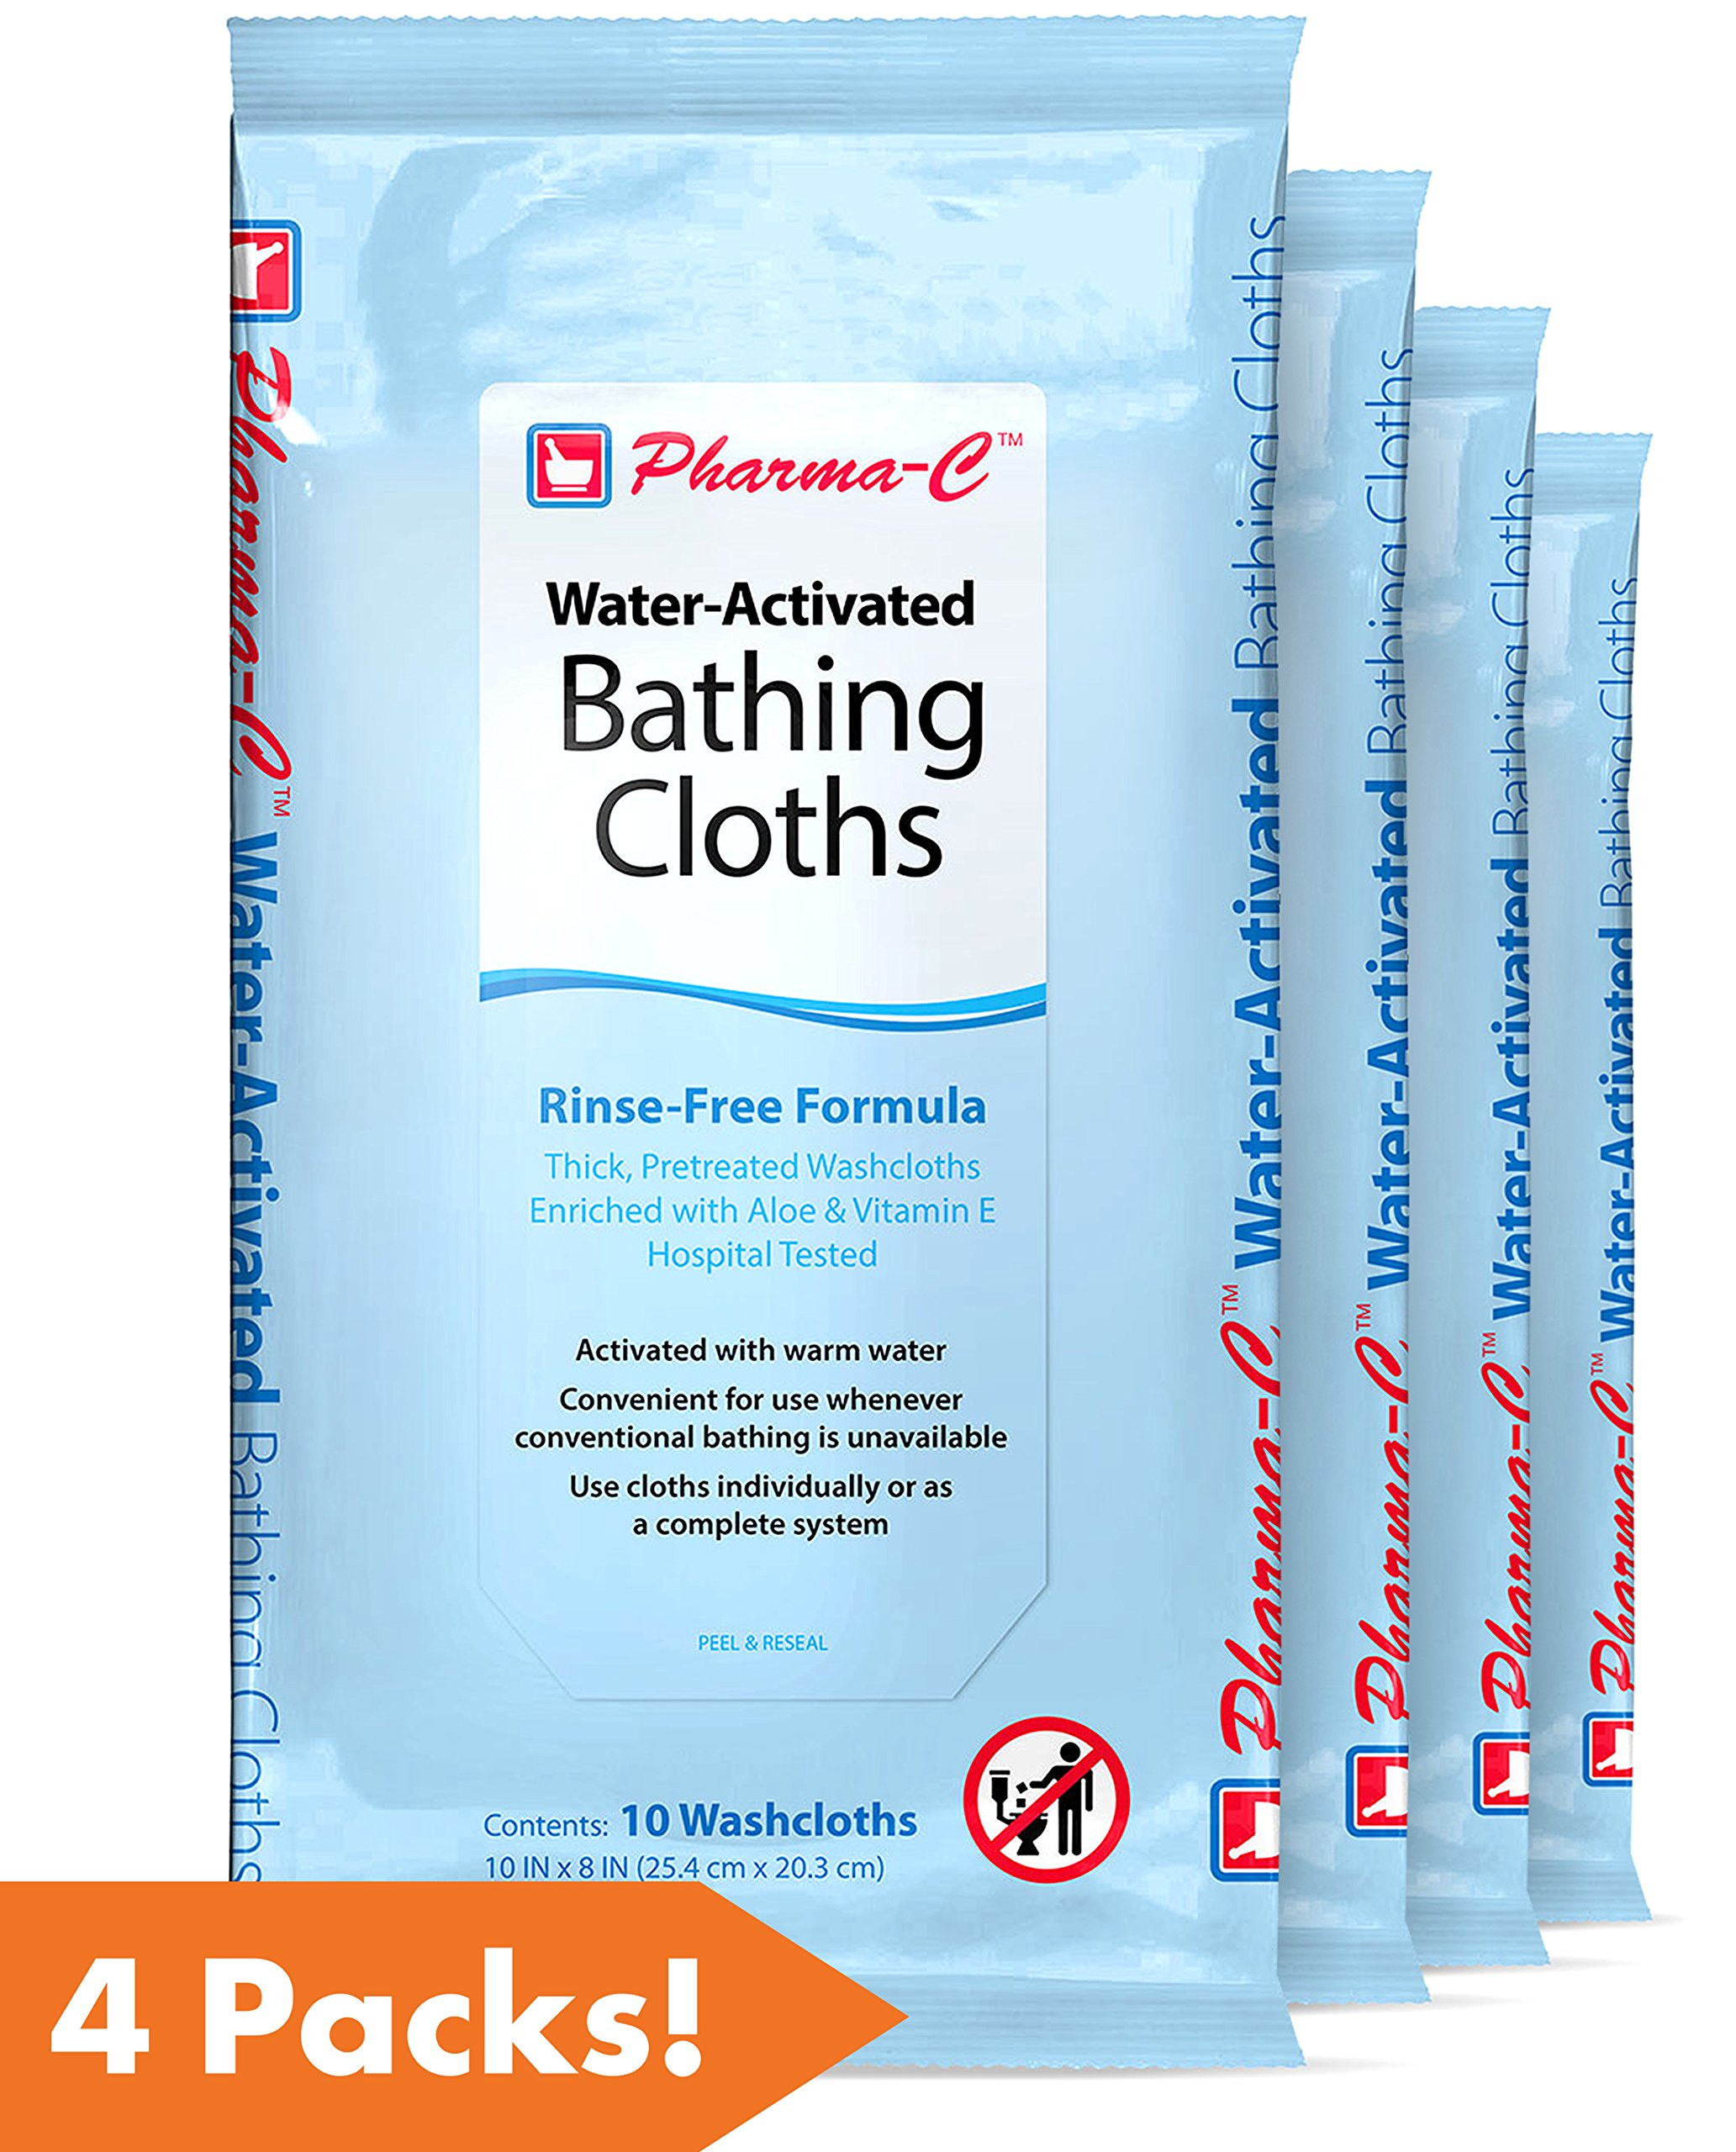 Pharma-C-Wipes Water Activated Bathing Cloths - Rinse Free - Thick, Pretreated Washcloths (4 packs of 10 Wipes, 40 Total Wipes)